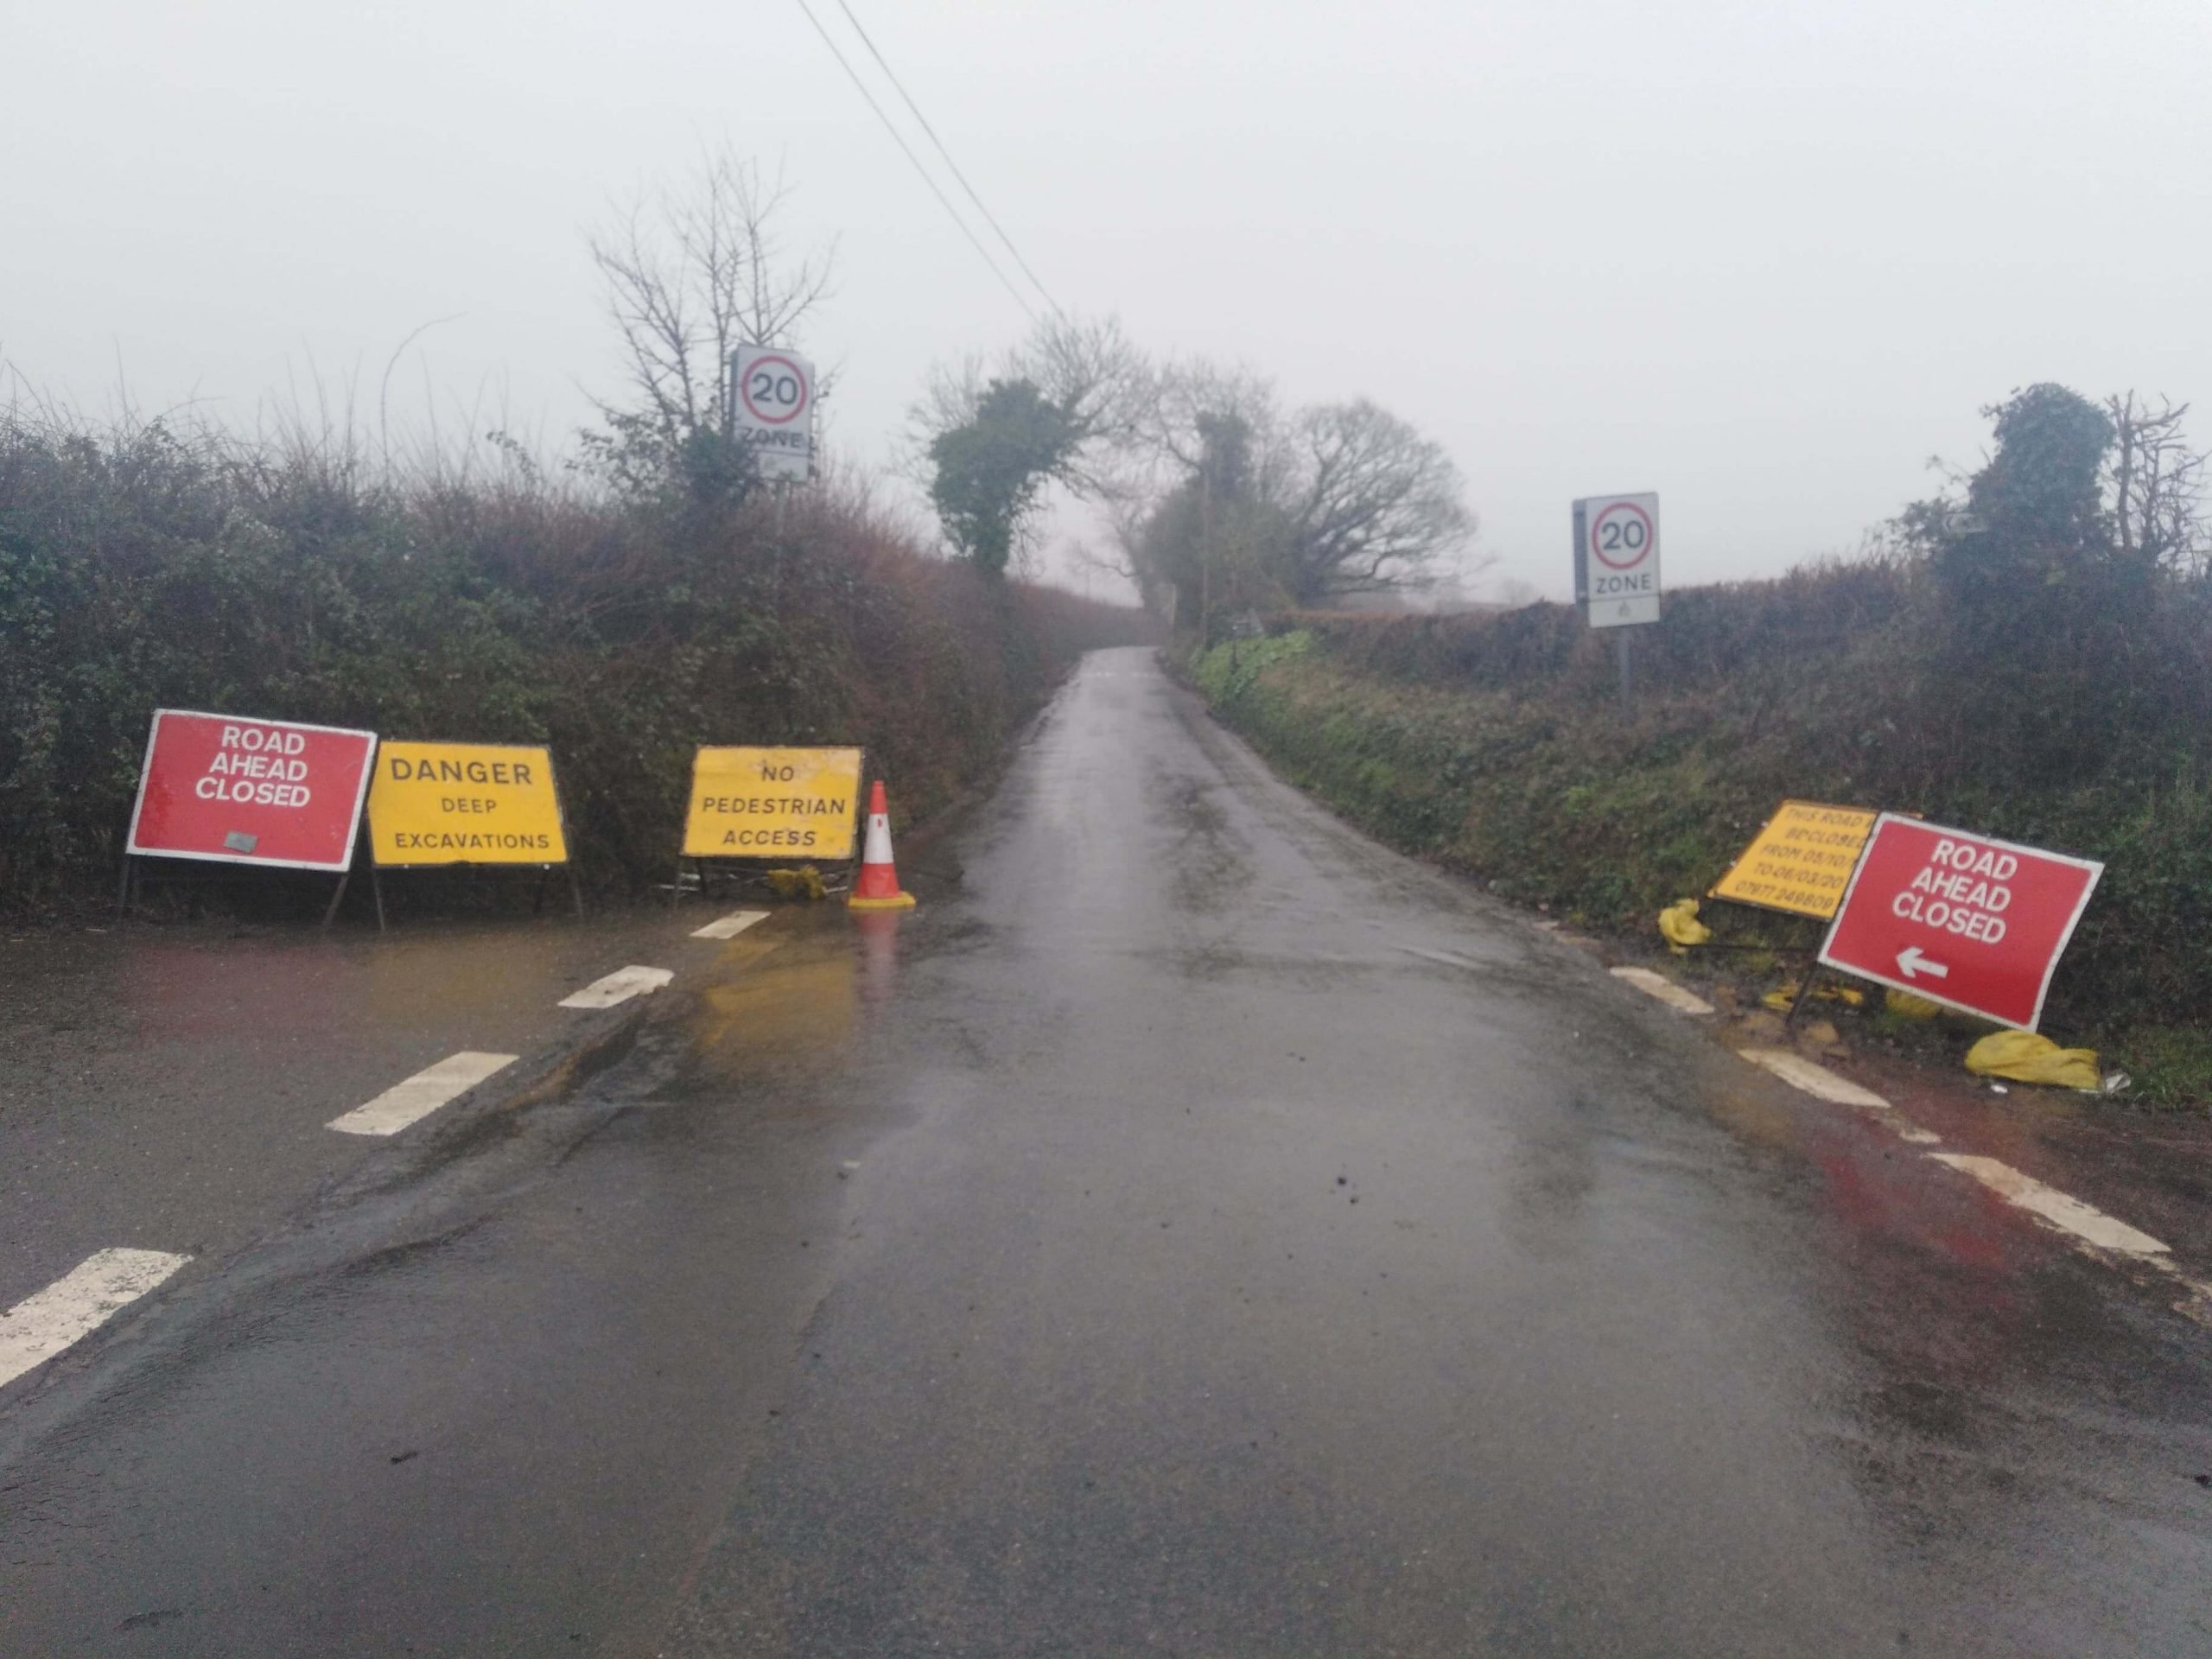 The road closure in Church Hill, Pinhoe, Exeter.